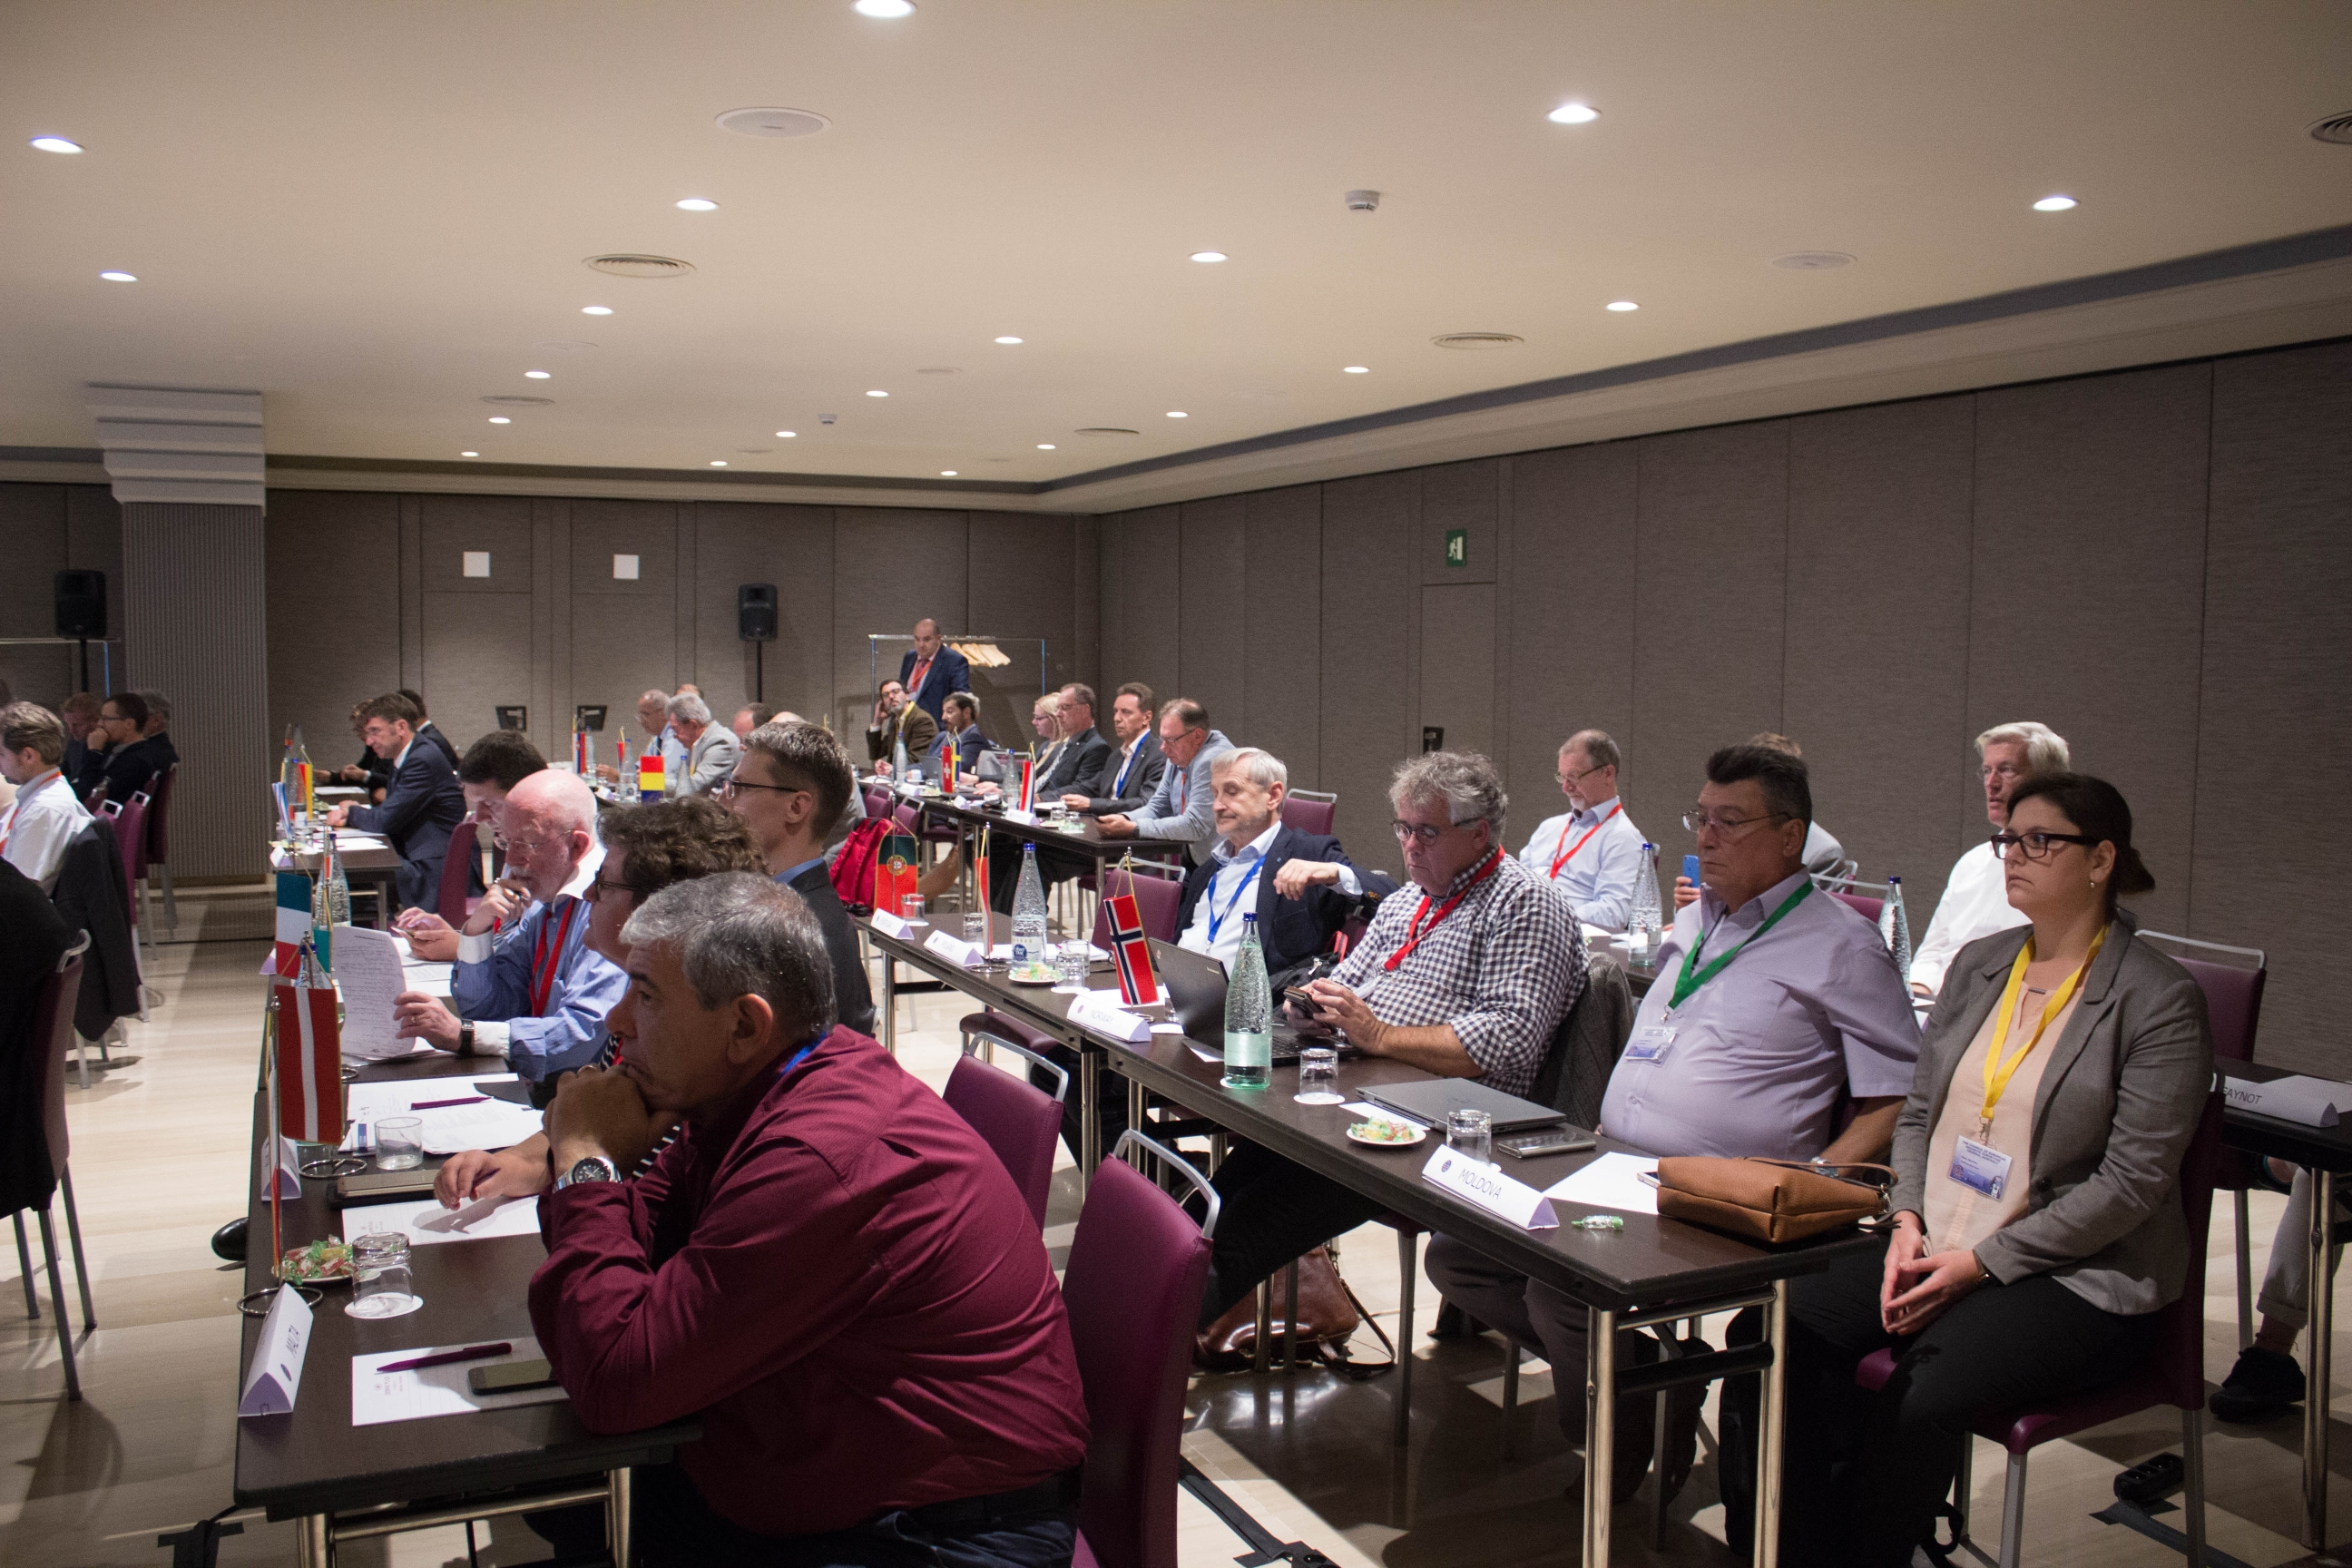 clge-general-assembly-barcelona-2018_43427407870_o.jpg